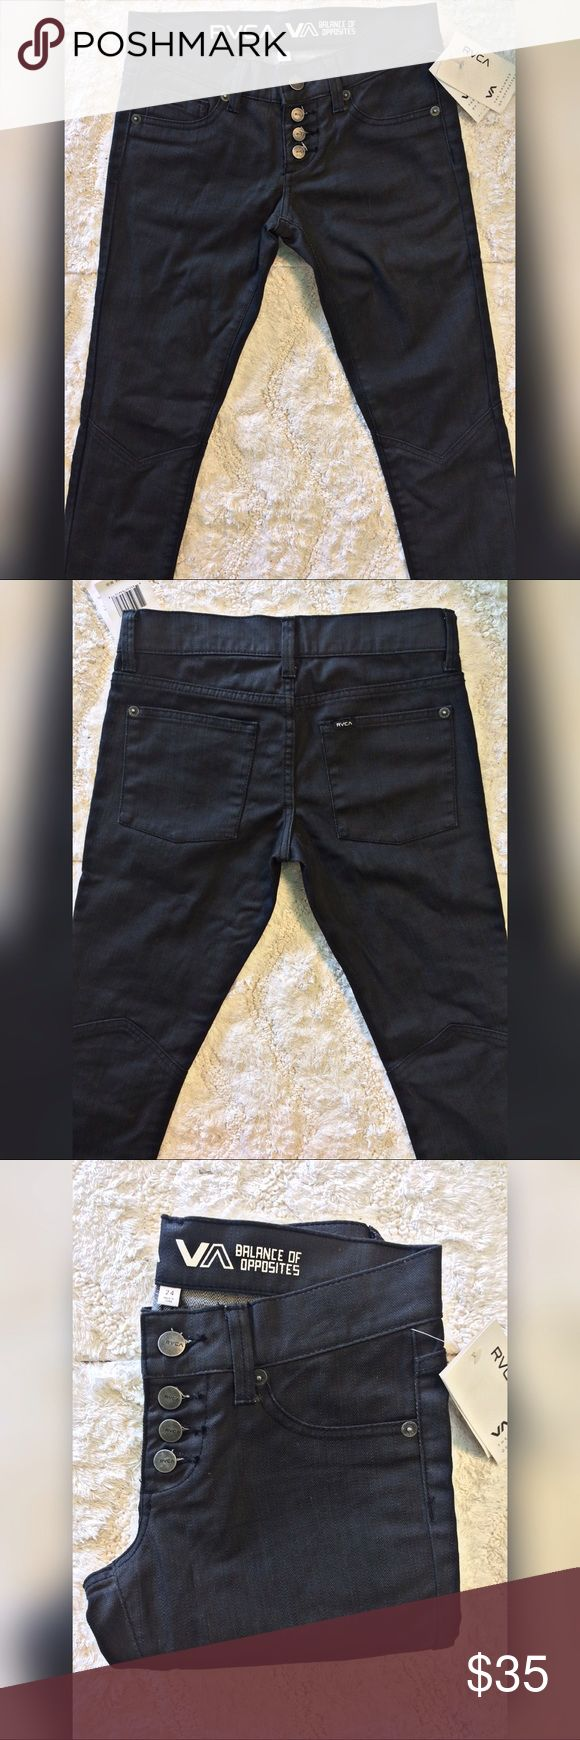 RVCA Perfect Stranger Skinnies (NWT) RVCA Perfect Stranger Skinnies🔥🔥🔥 NWT - New condition✨ Four button closure and cute knee seams! Size 24 - recommend for a 23/24 size.   🙌🏽Bundle With Two or More Items for 20% OFF🙌🏽  👉🏽Item ships May 2nd👈🏽 RVCA Jeans Skinny